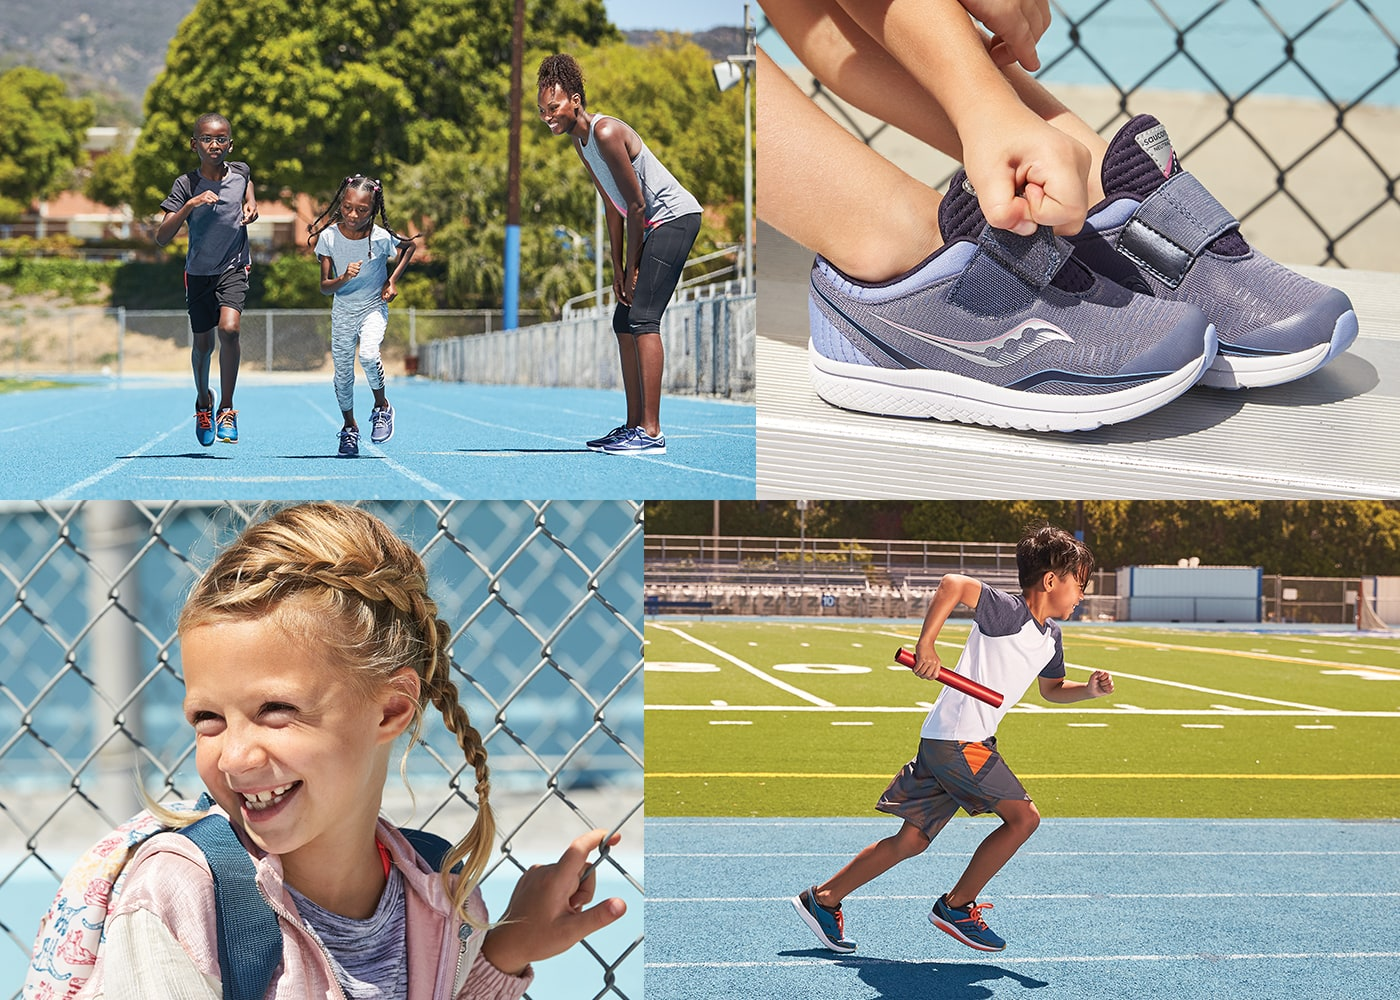 Gallery of kids wearing the Saucony Kinvara 11